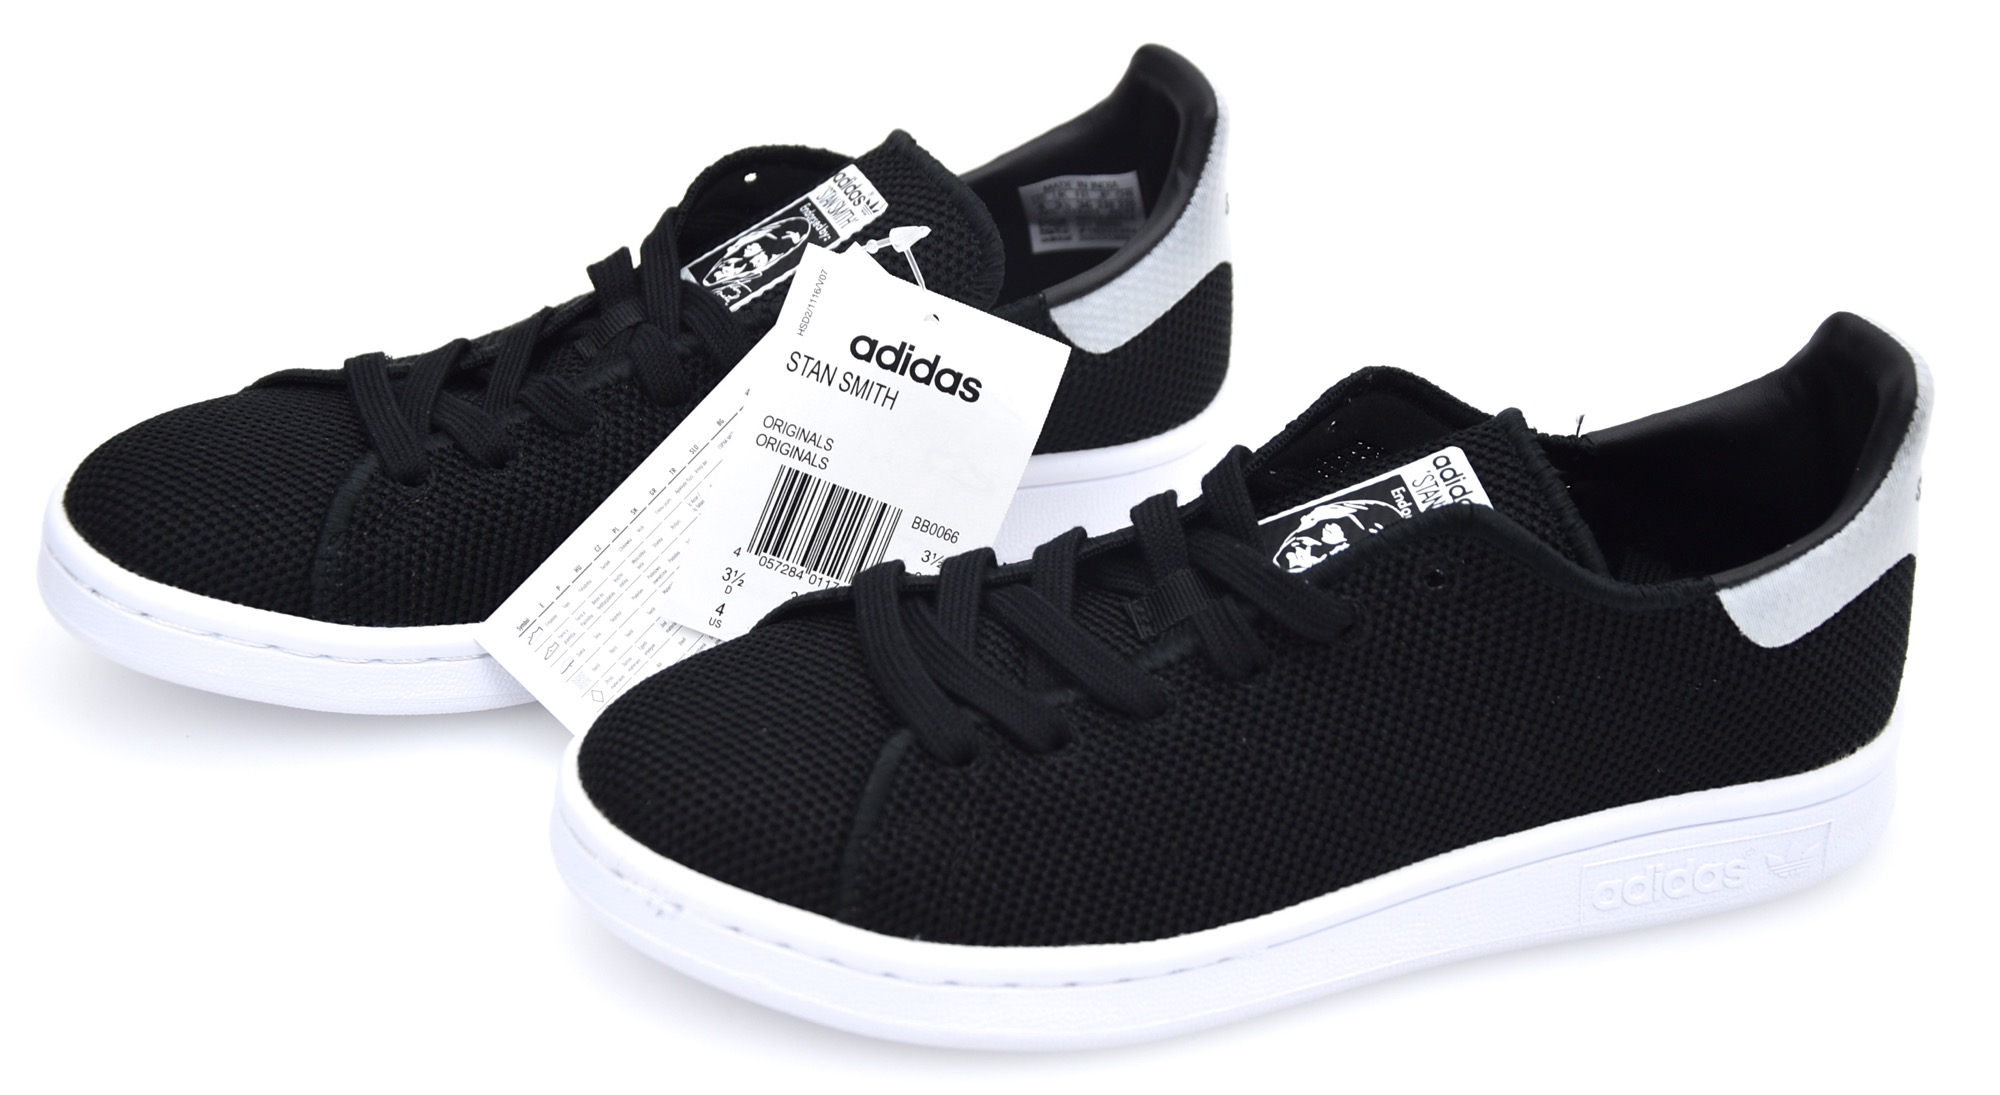 ADIDAS MAN WOMAN UNISEX SNEAKER SHOES CODE BB0065 - BB0066 STAN SMITH